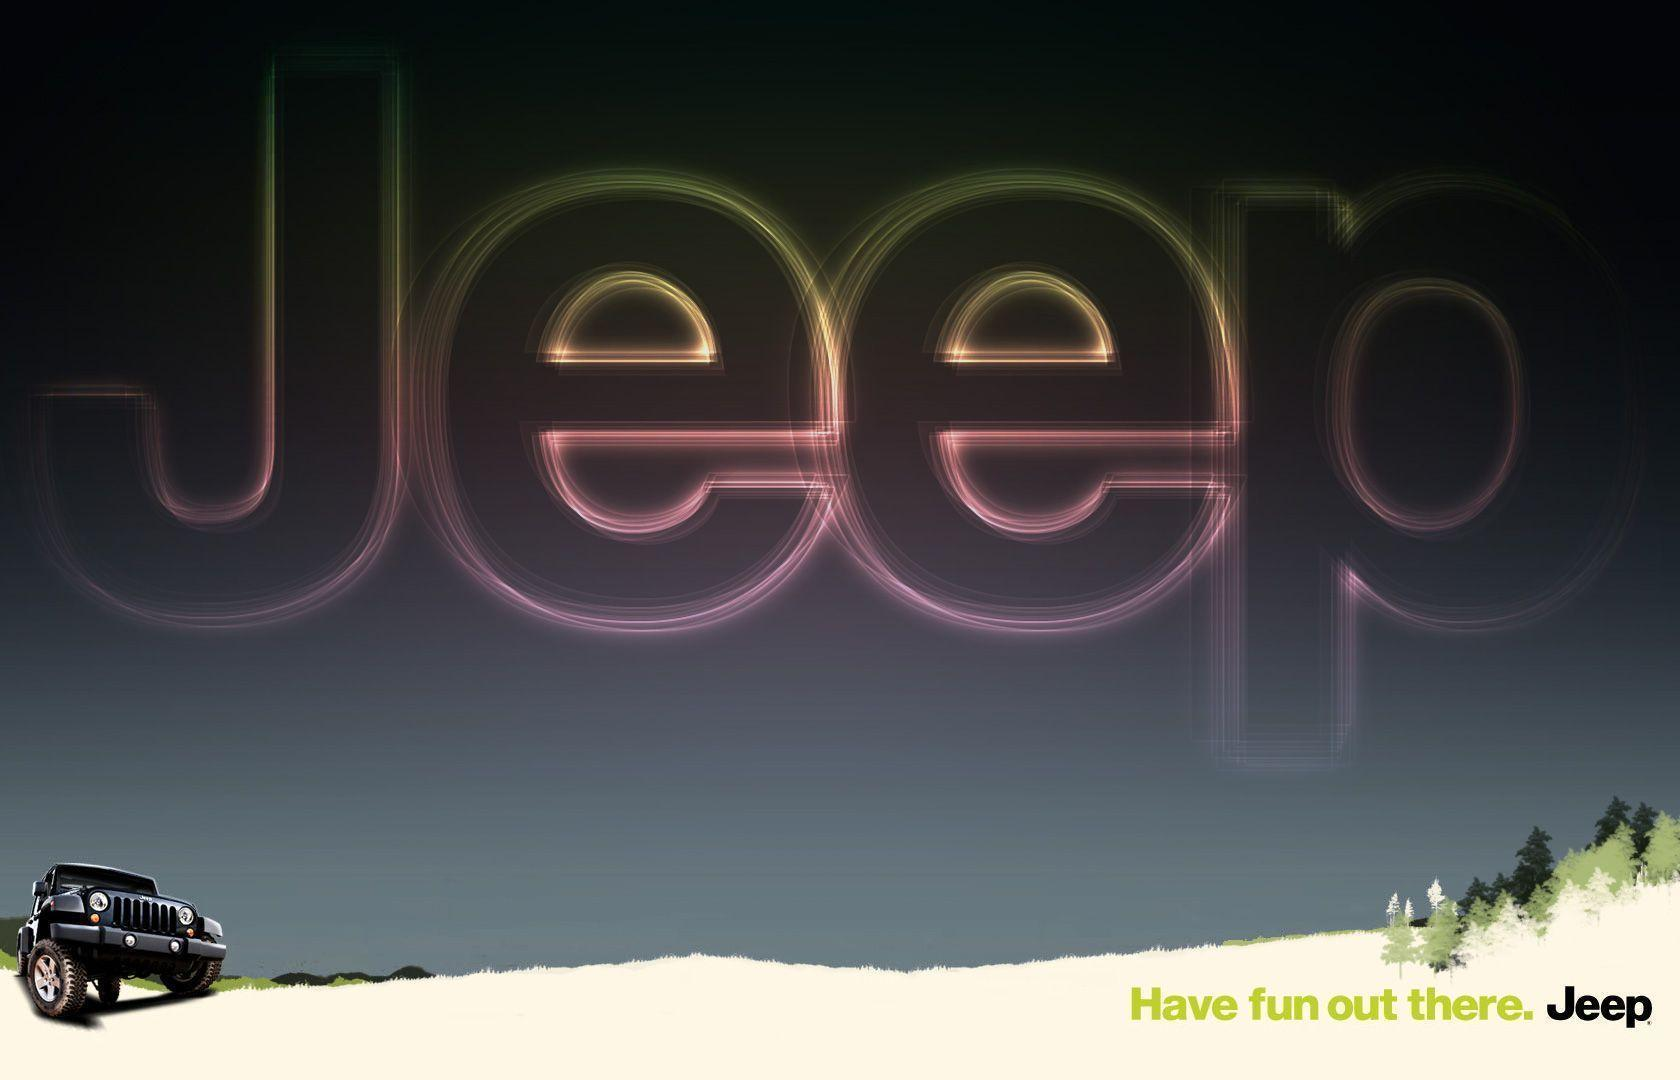 jeep logo hd wallpaper - photo #4